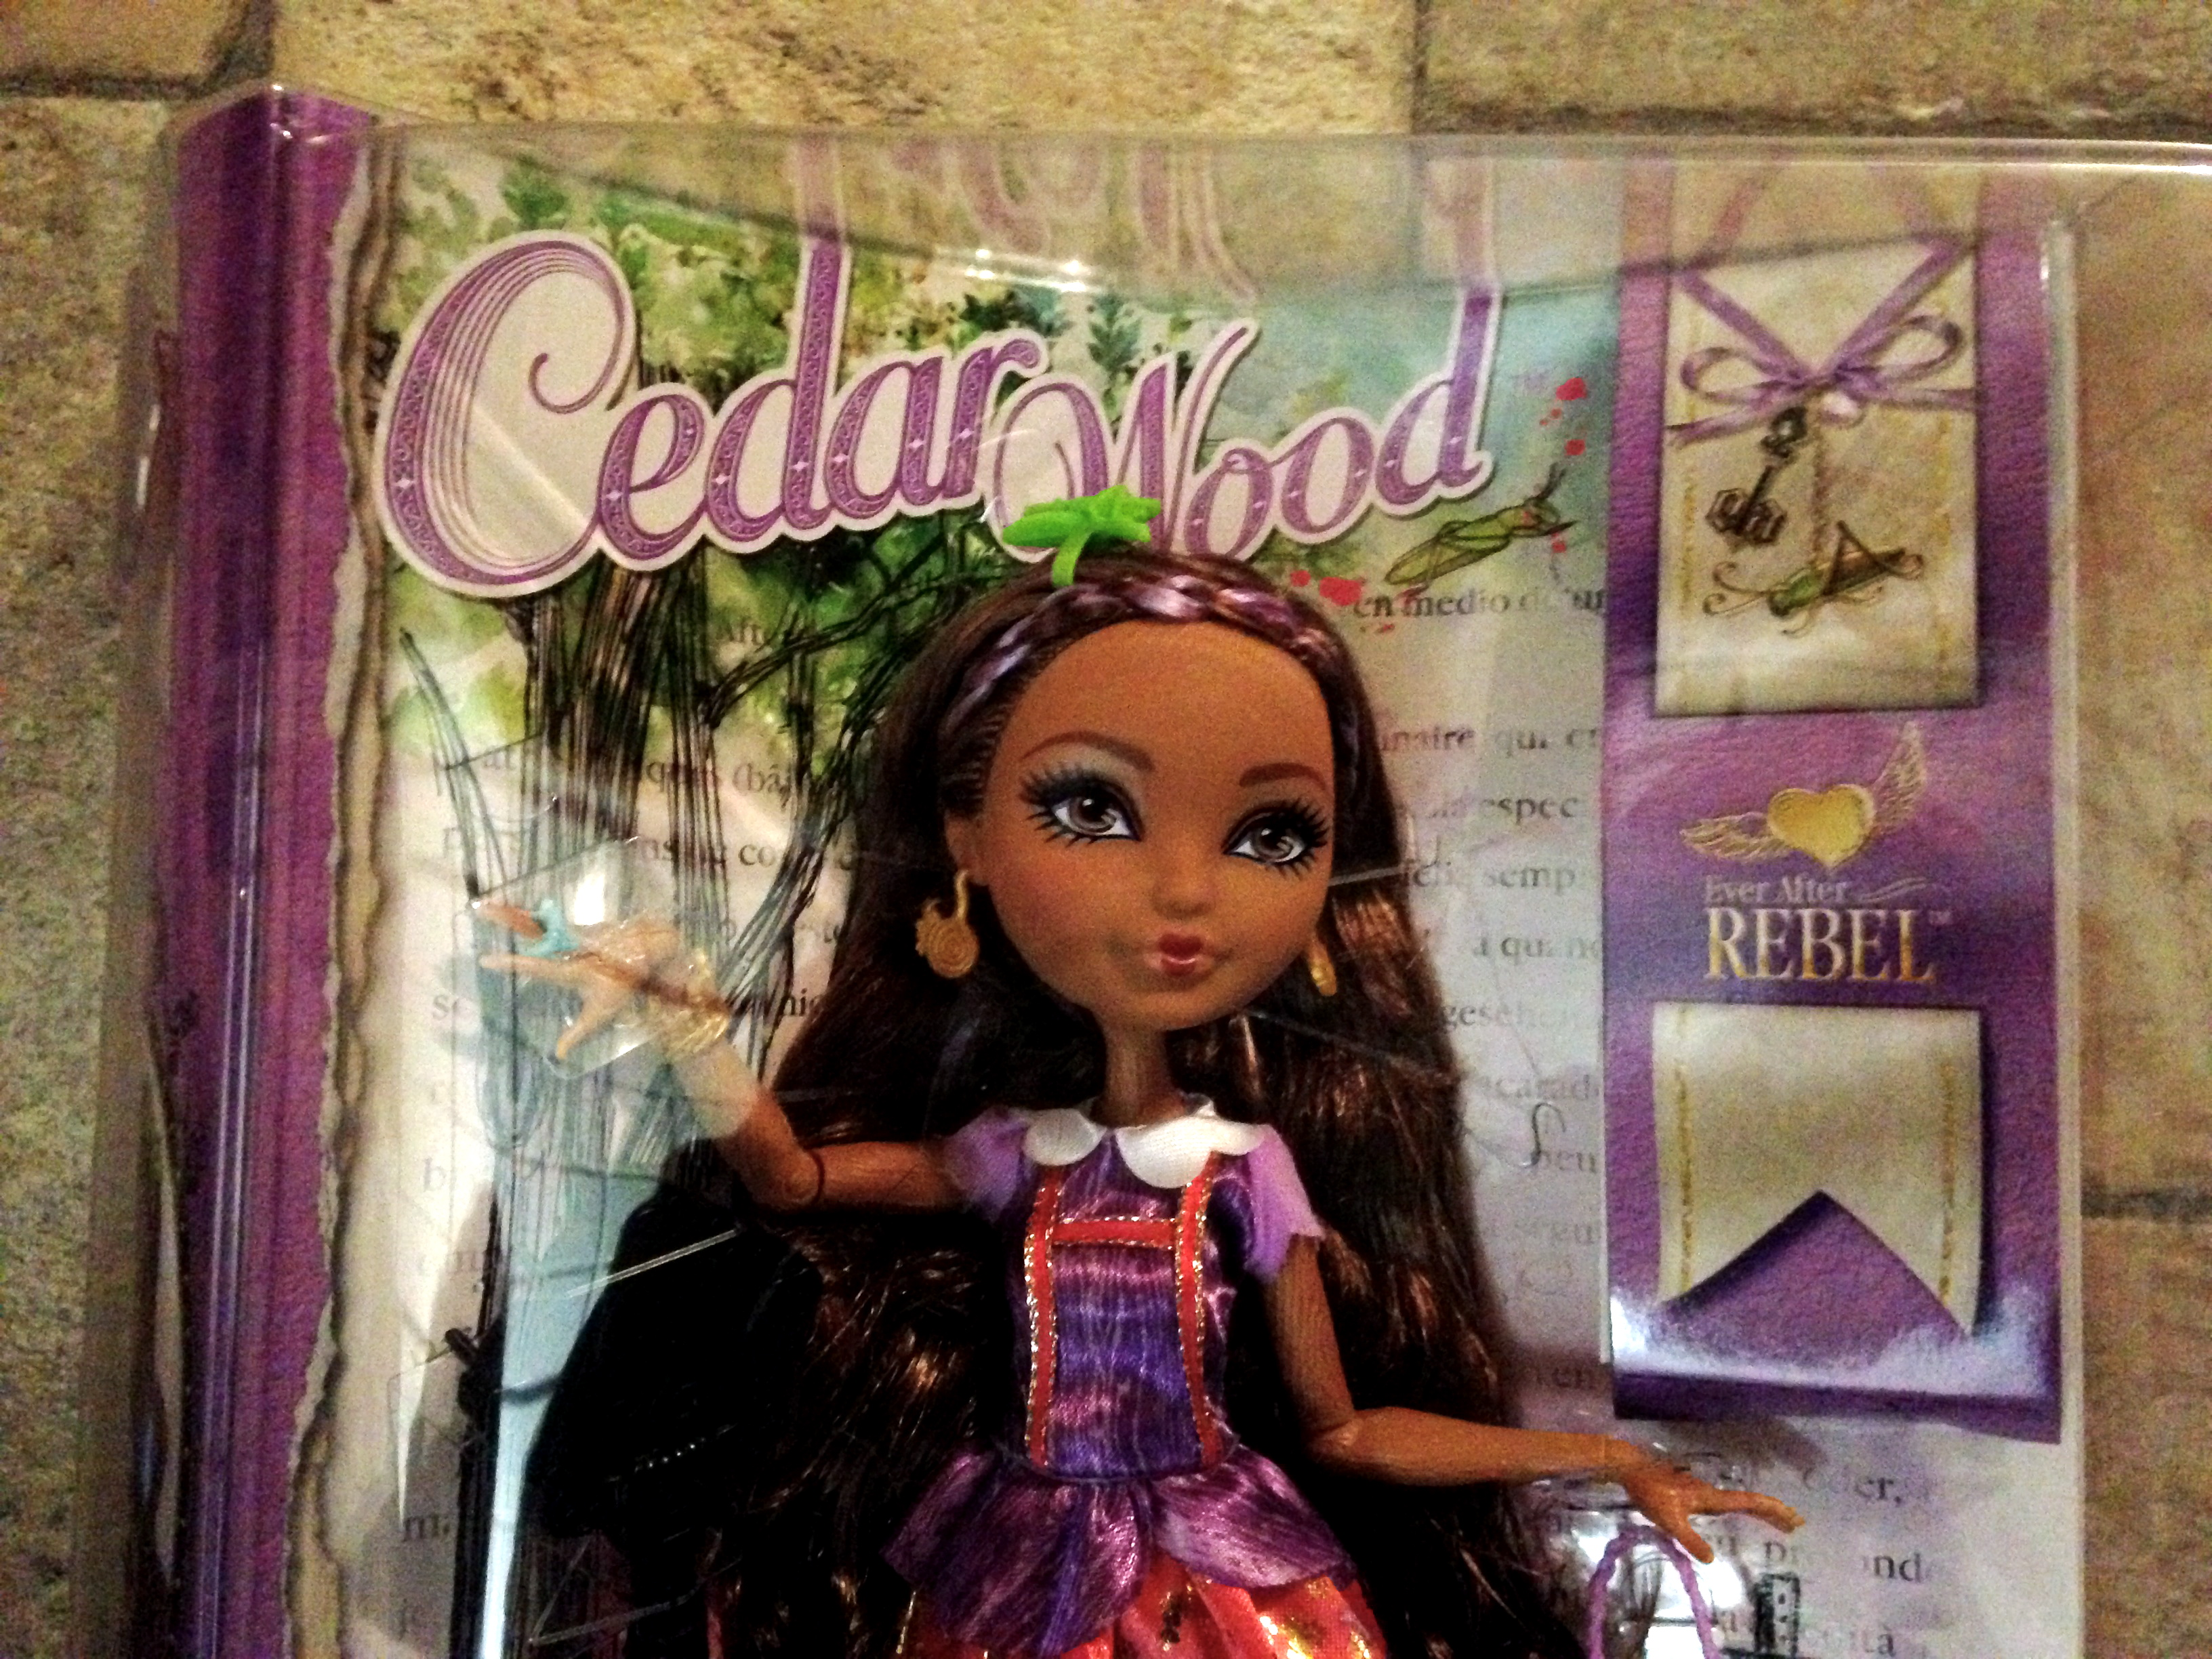 Cedar Wood - Ever After High